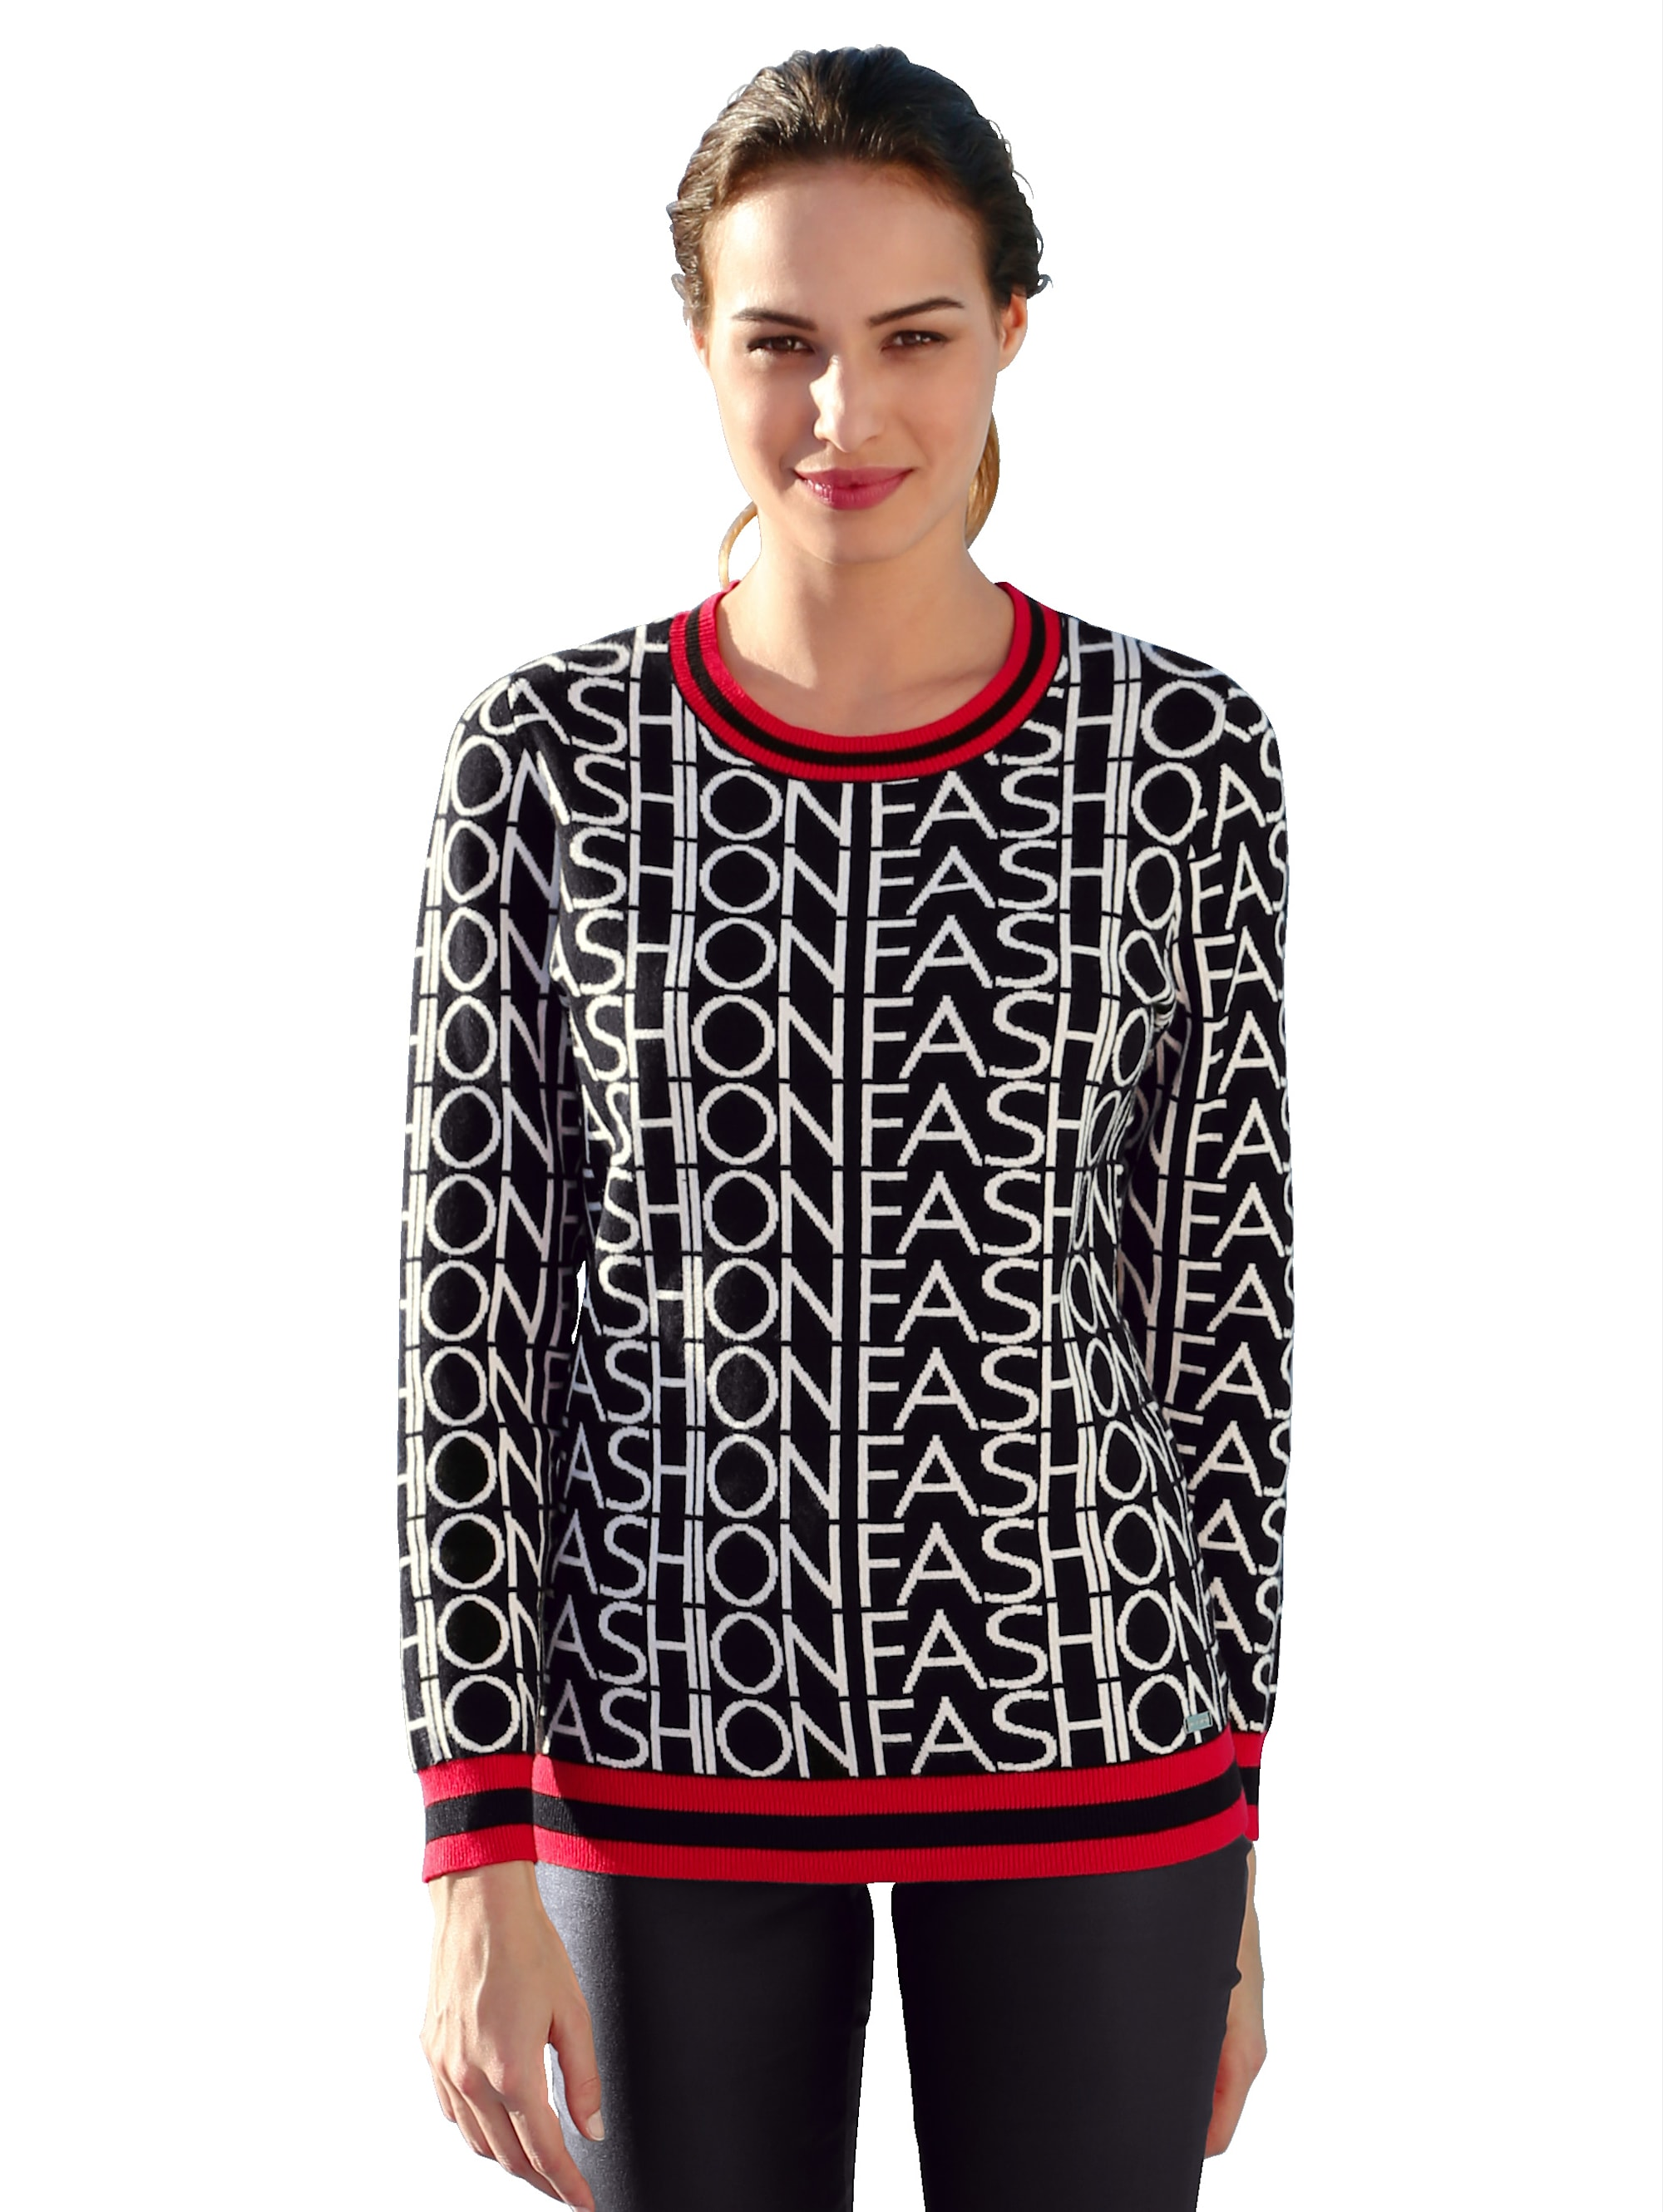 AMY VERMONT Pullover mit Wording allover wXp21 nD216